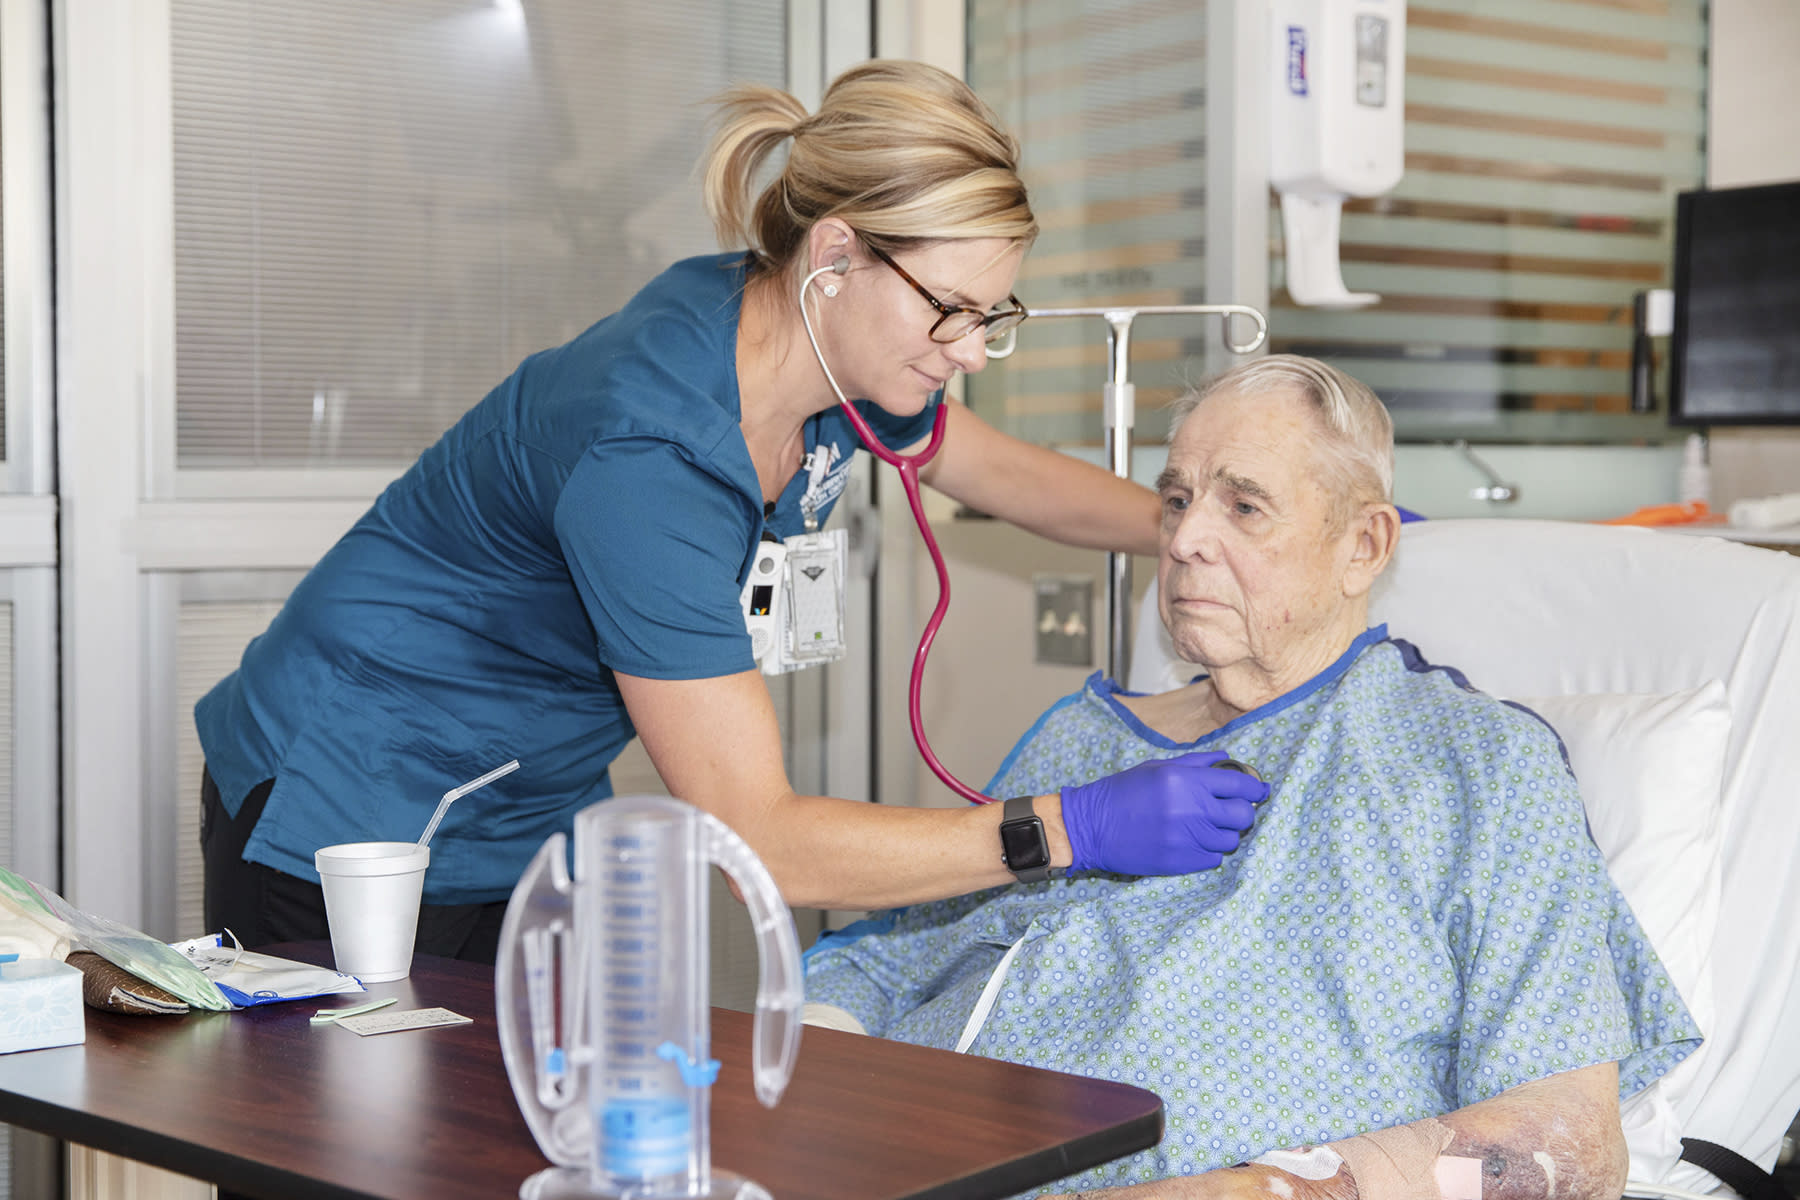 In this July 16, 2019 photo provided by the VA Eastern Colorado Health Care System, George Barrett, 85, of Lakewood, Colo., is checked by nurse Renee Whitley as he recuperates from open-heart surgery at the Rocky Mountain Regional VA Medical Center in Aurora, Colo. The hospital helped the American College of Surgeons test new standards to improve surgical care for older adults. (Shawn Fury/VA Eastern Colorado Health Care System via AP)